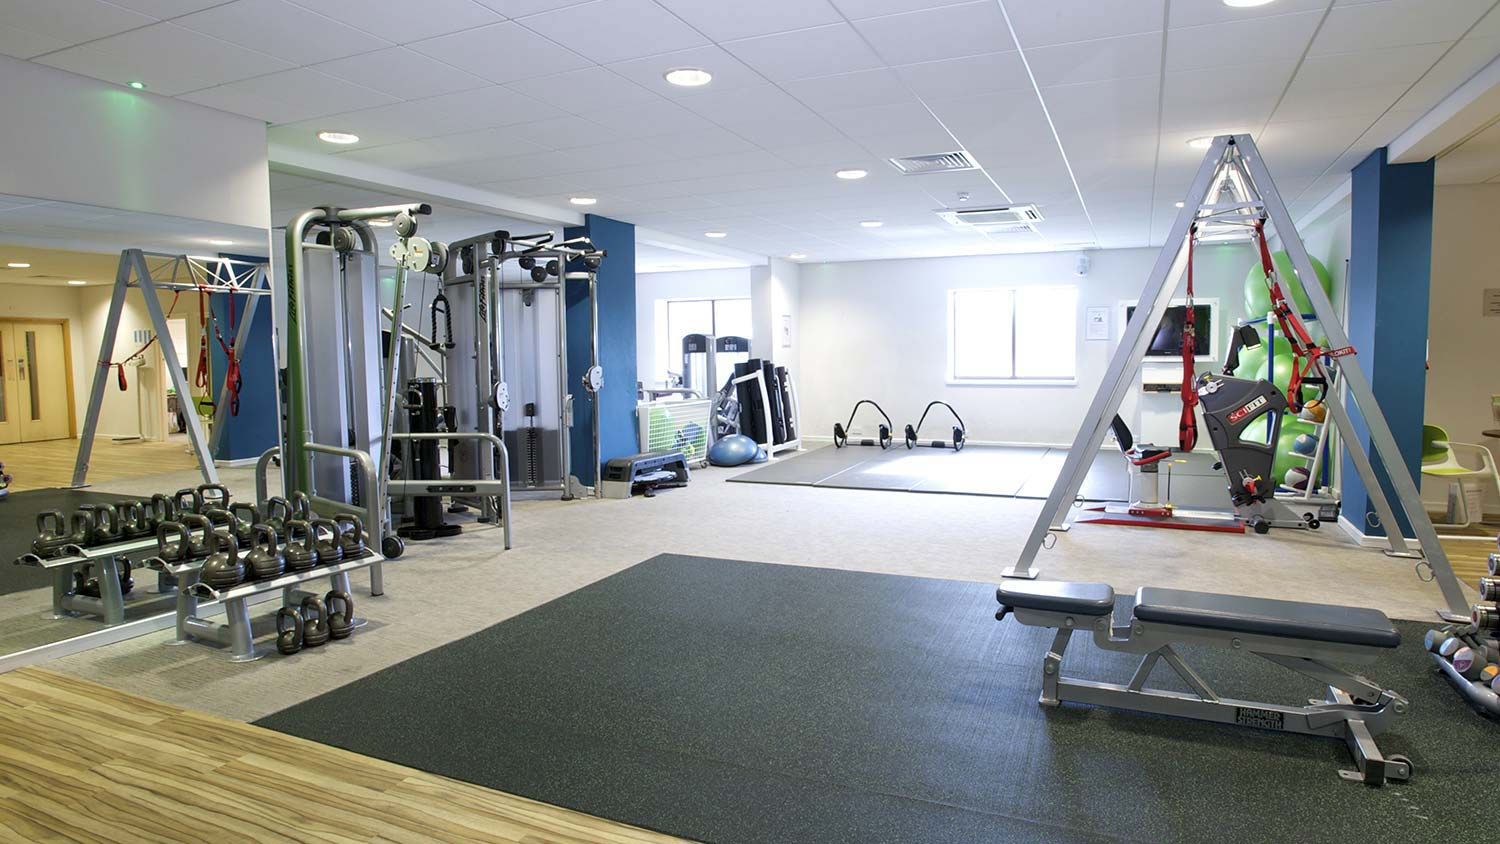 Gym in bromley fitness wellbeing nuffield health